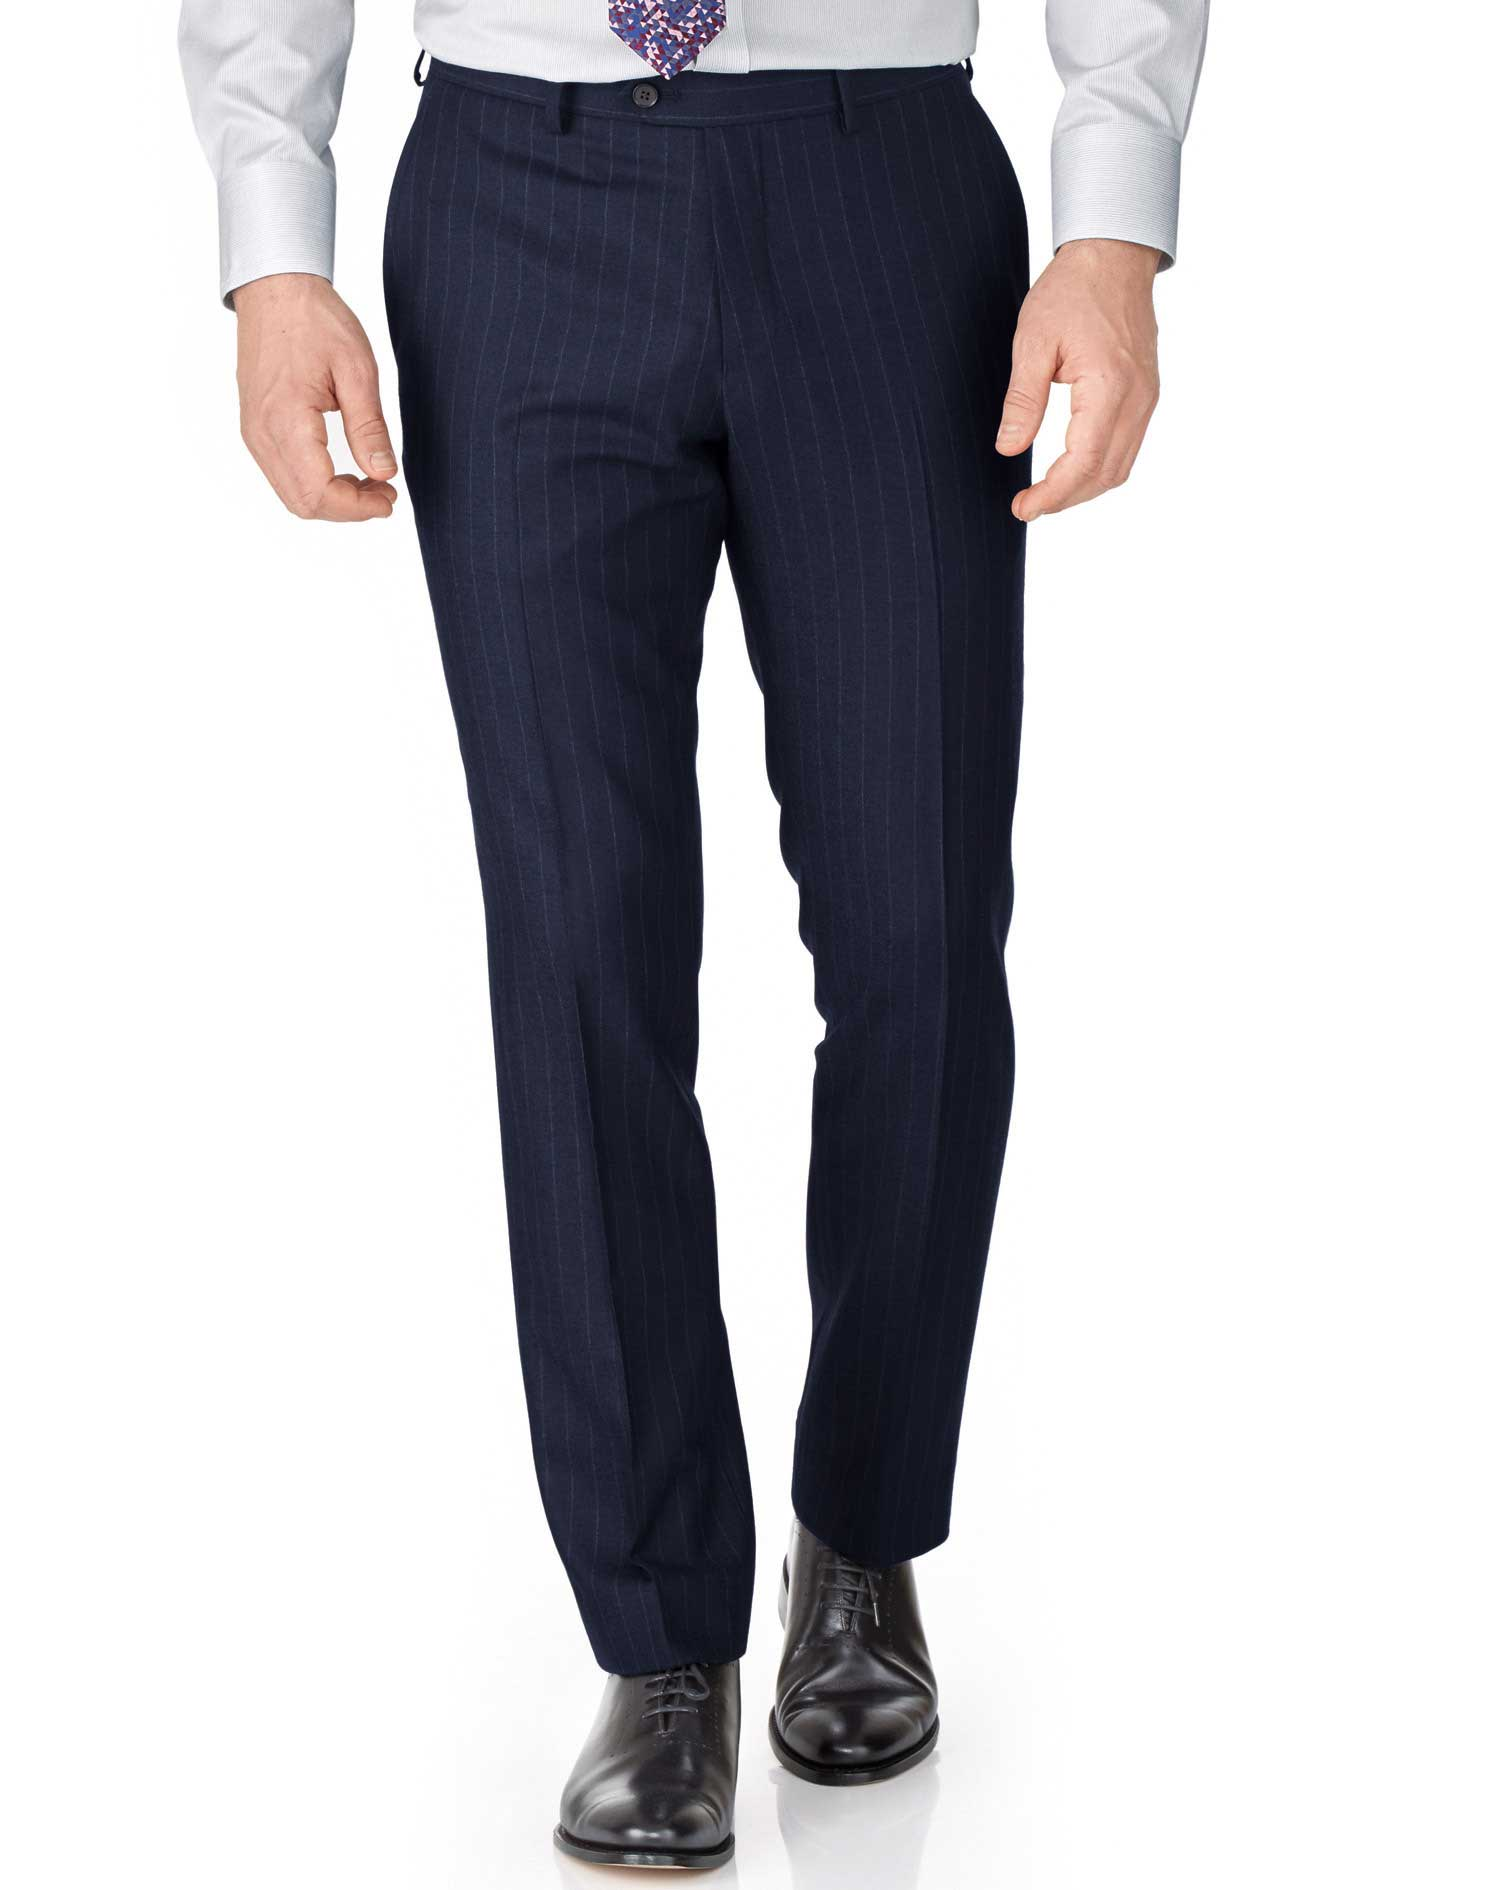 Navy Stripe Slim Fit Saxony Business Suit Trousers Size W36 L38 by Charles Tyrwhitt